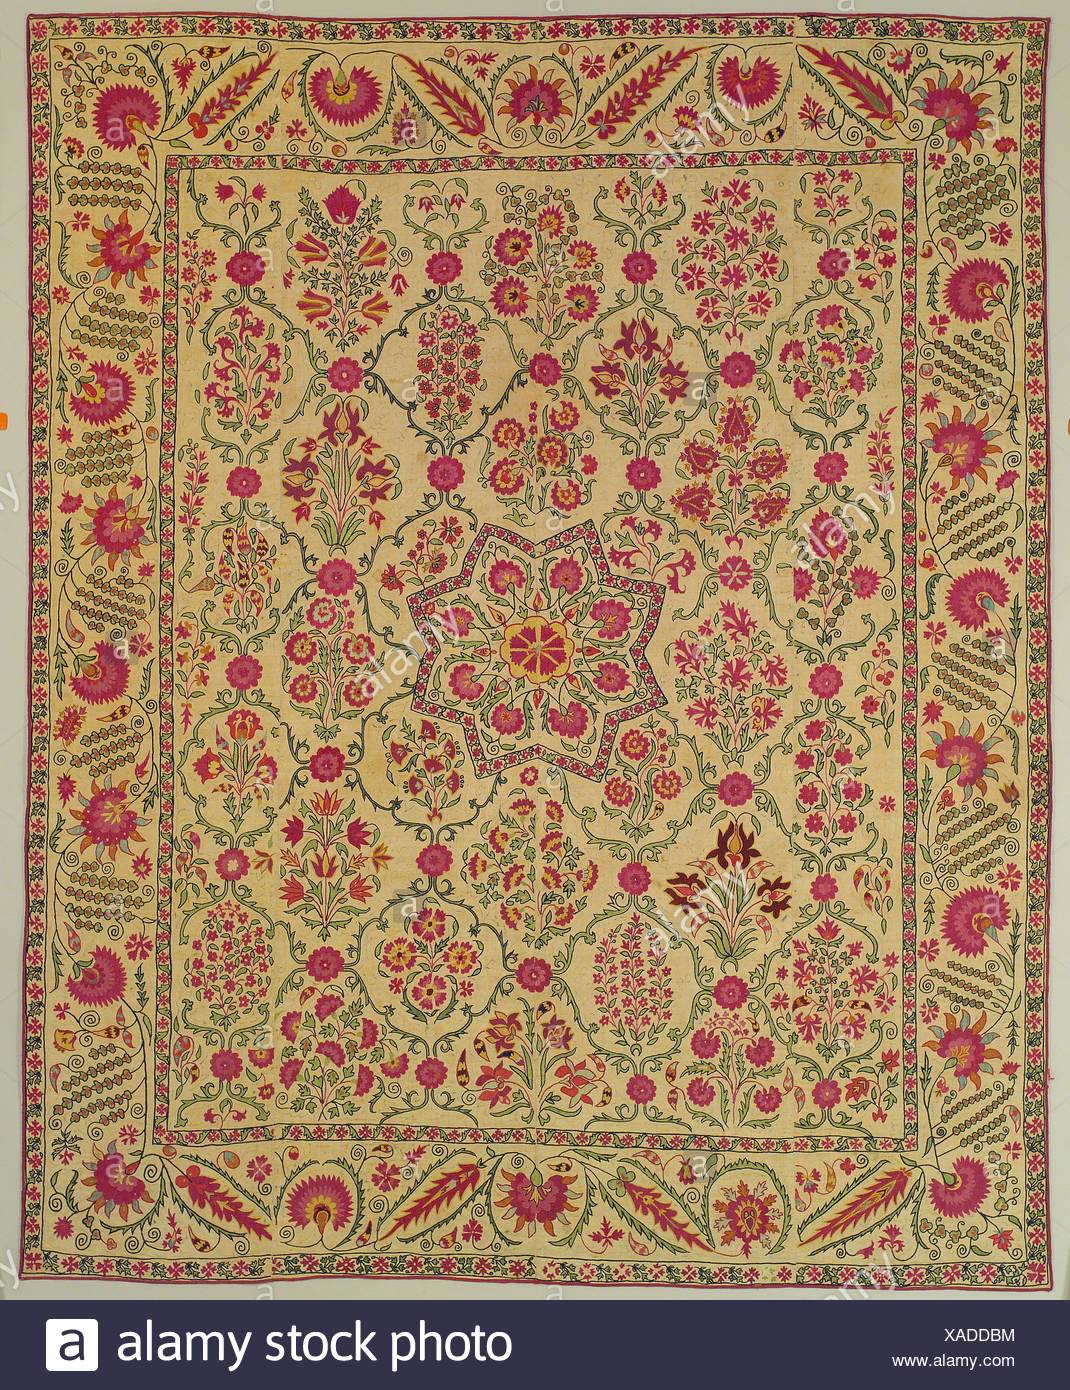 Hanging. Date: early 19th century; Geography: Attributed to present-day Uzbekistan, Nurata; Medium: Silk embroidery on cotton; couching, chain, - Stock Image